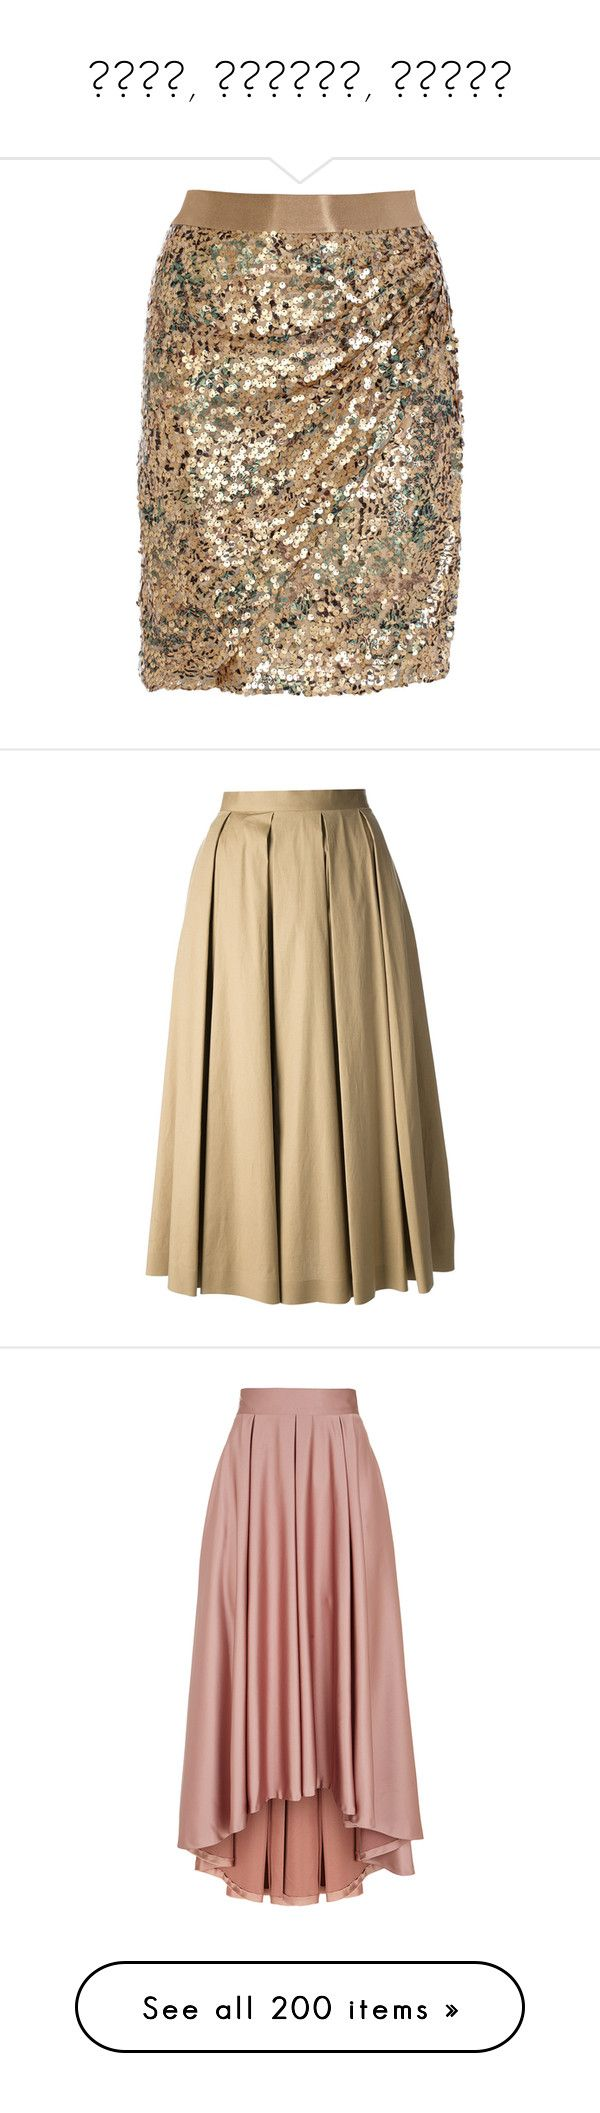 """""""Юбки, жакеты, брюки"""" by bliznec-anna ❤ liked on Polyvore featuring skirts, bottoms, metallics, brown skirt, sparkle skirts, coast skirts, sequin skirt, long skirts, midi skirt and high waisted pleated skirt"""